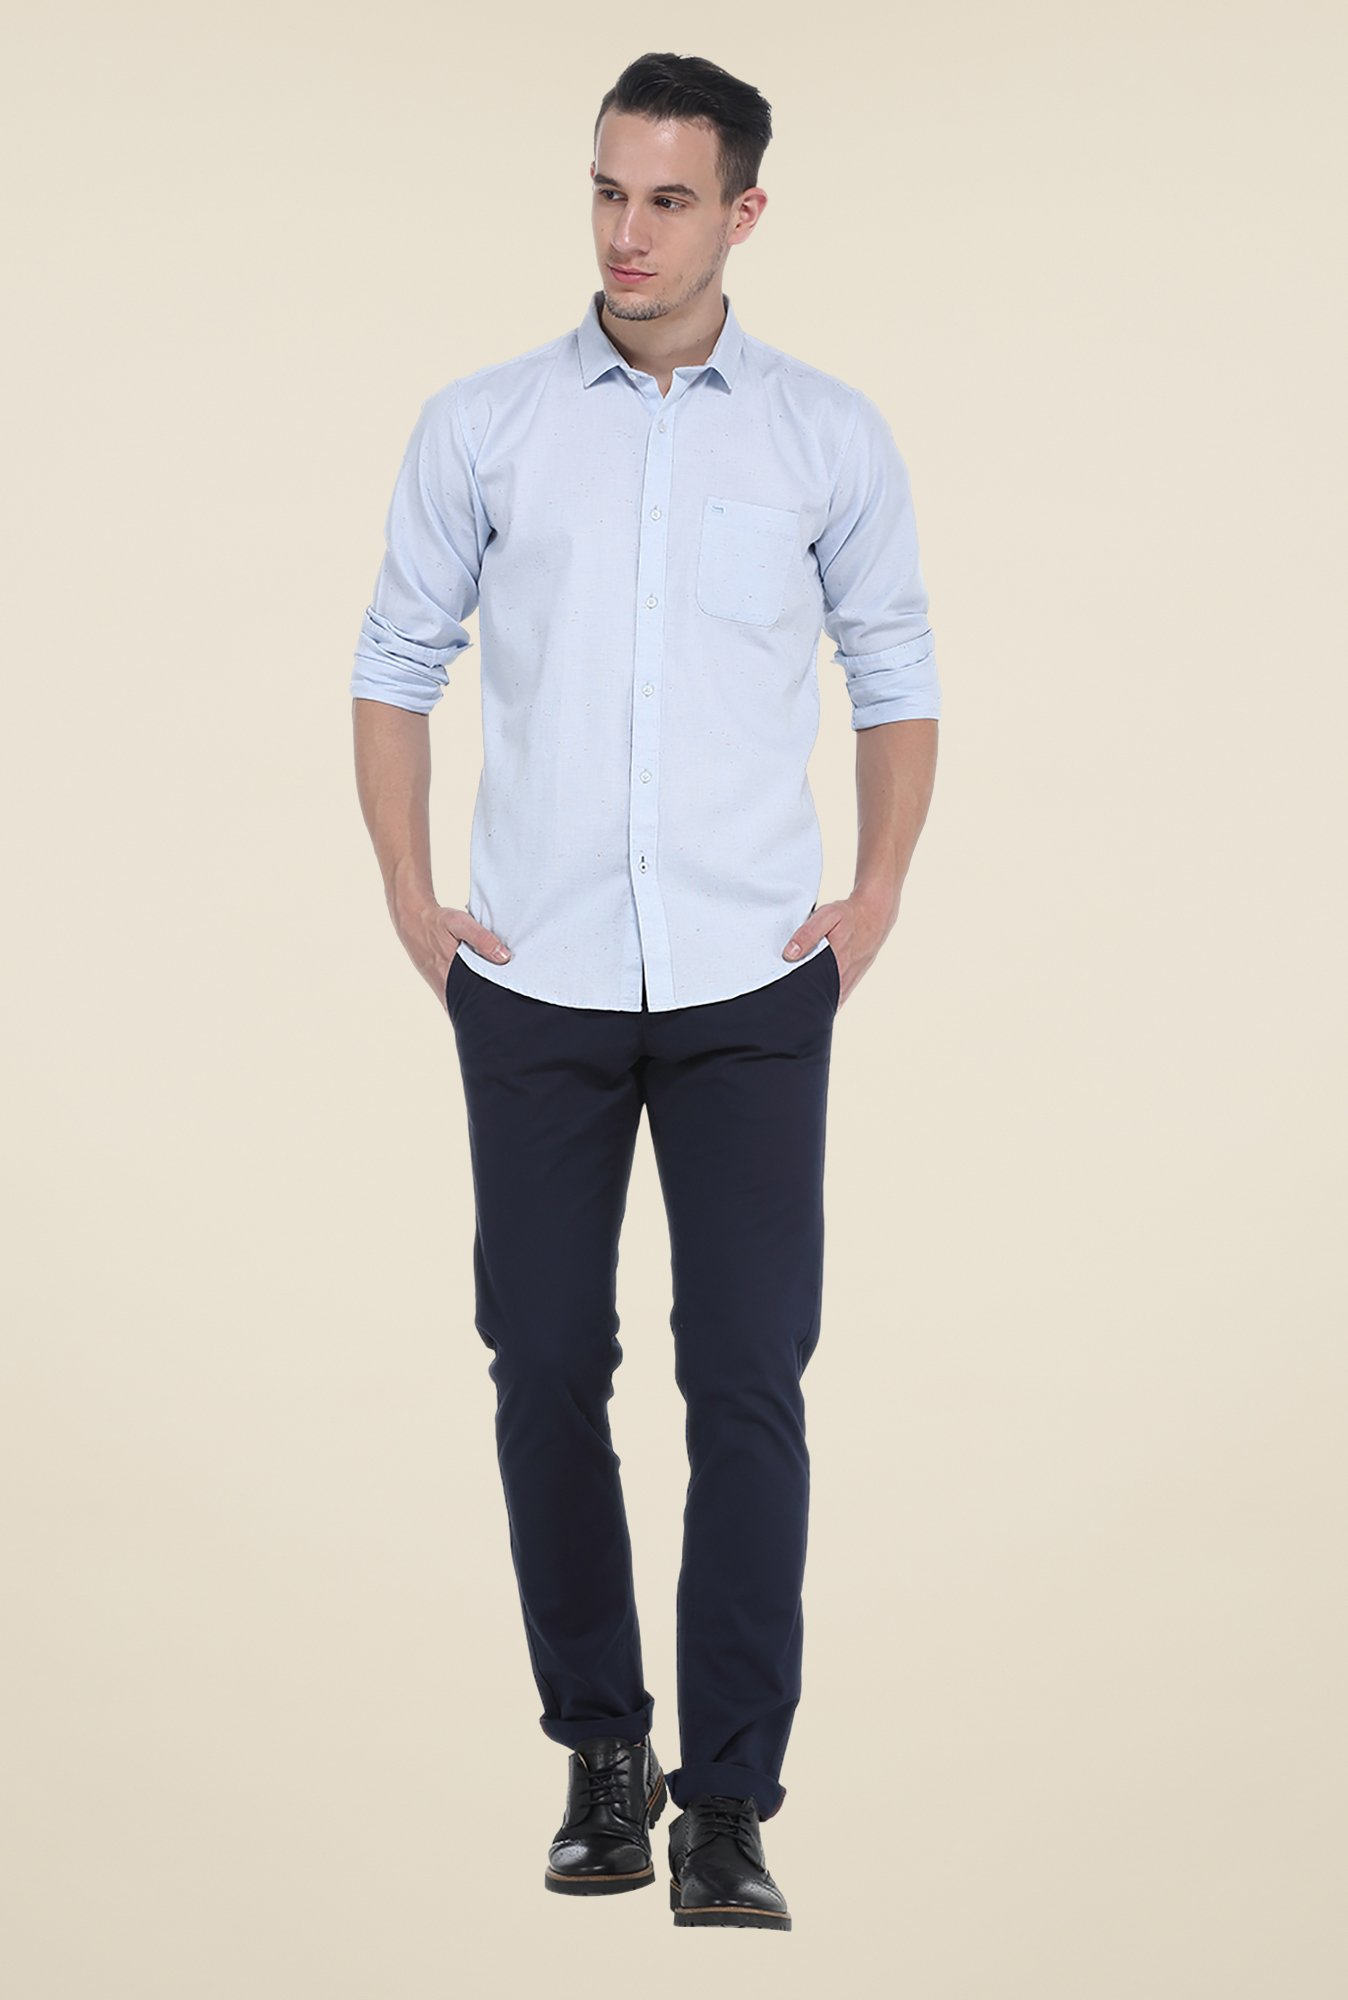 Basics Blue Textured Slim Fit Shirt